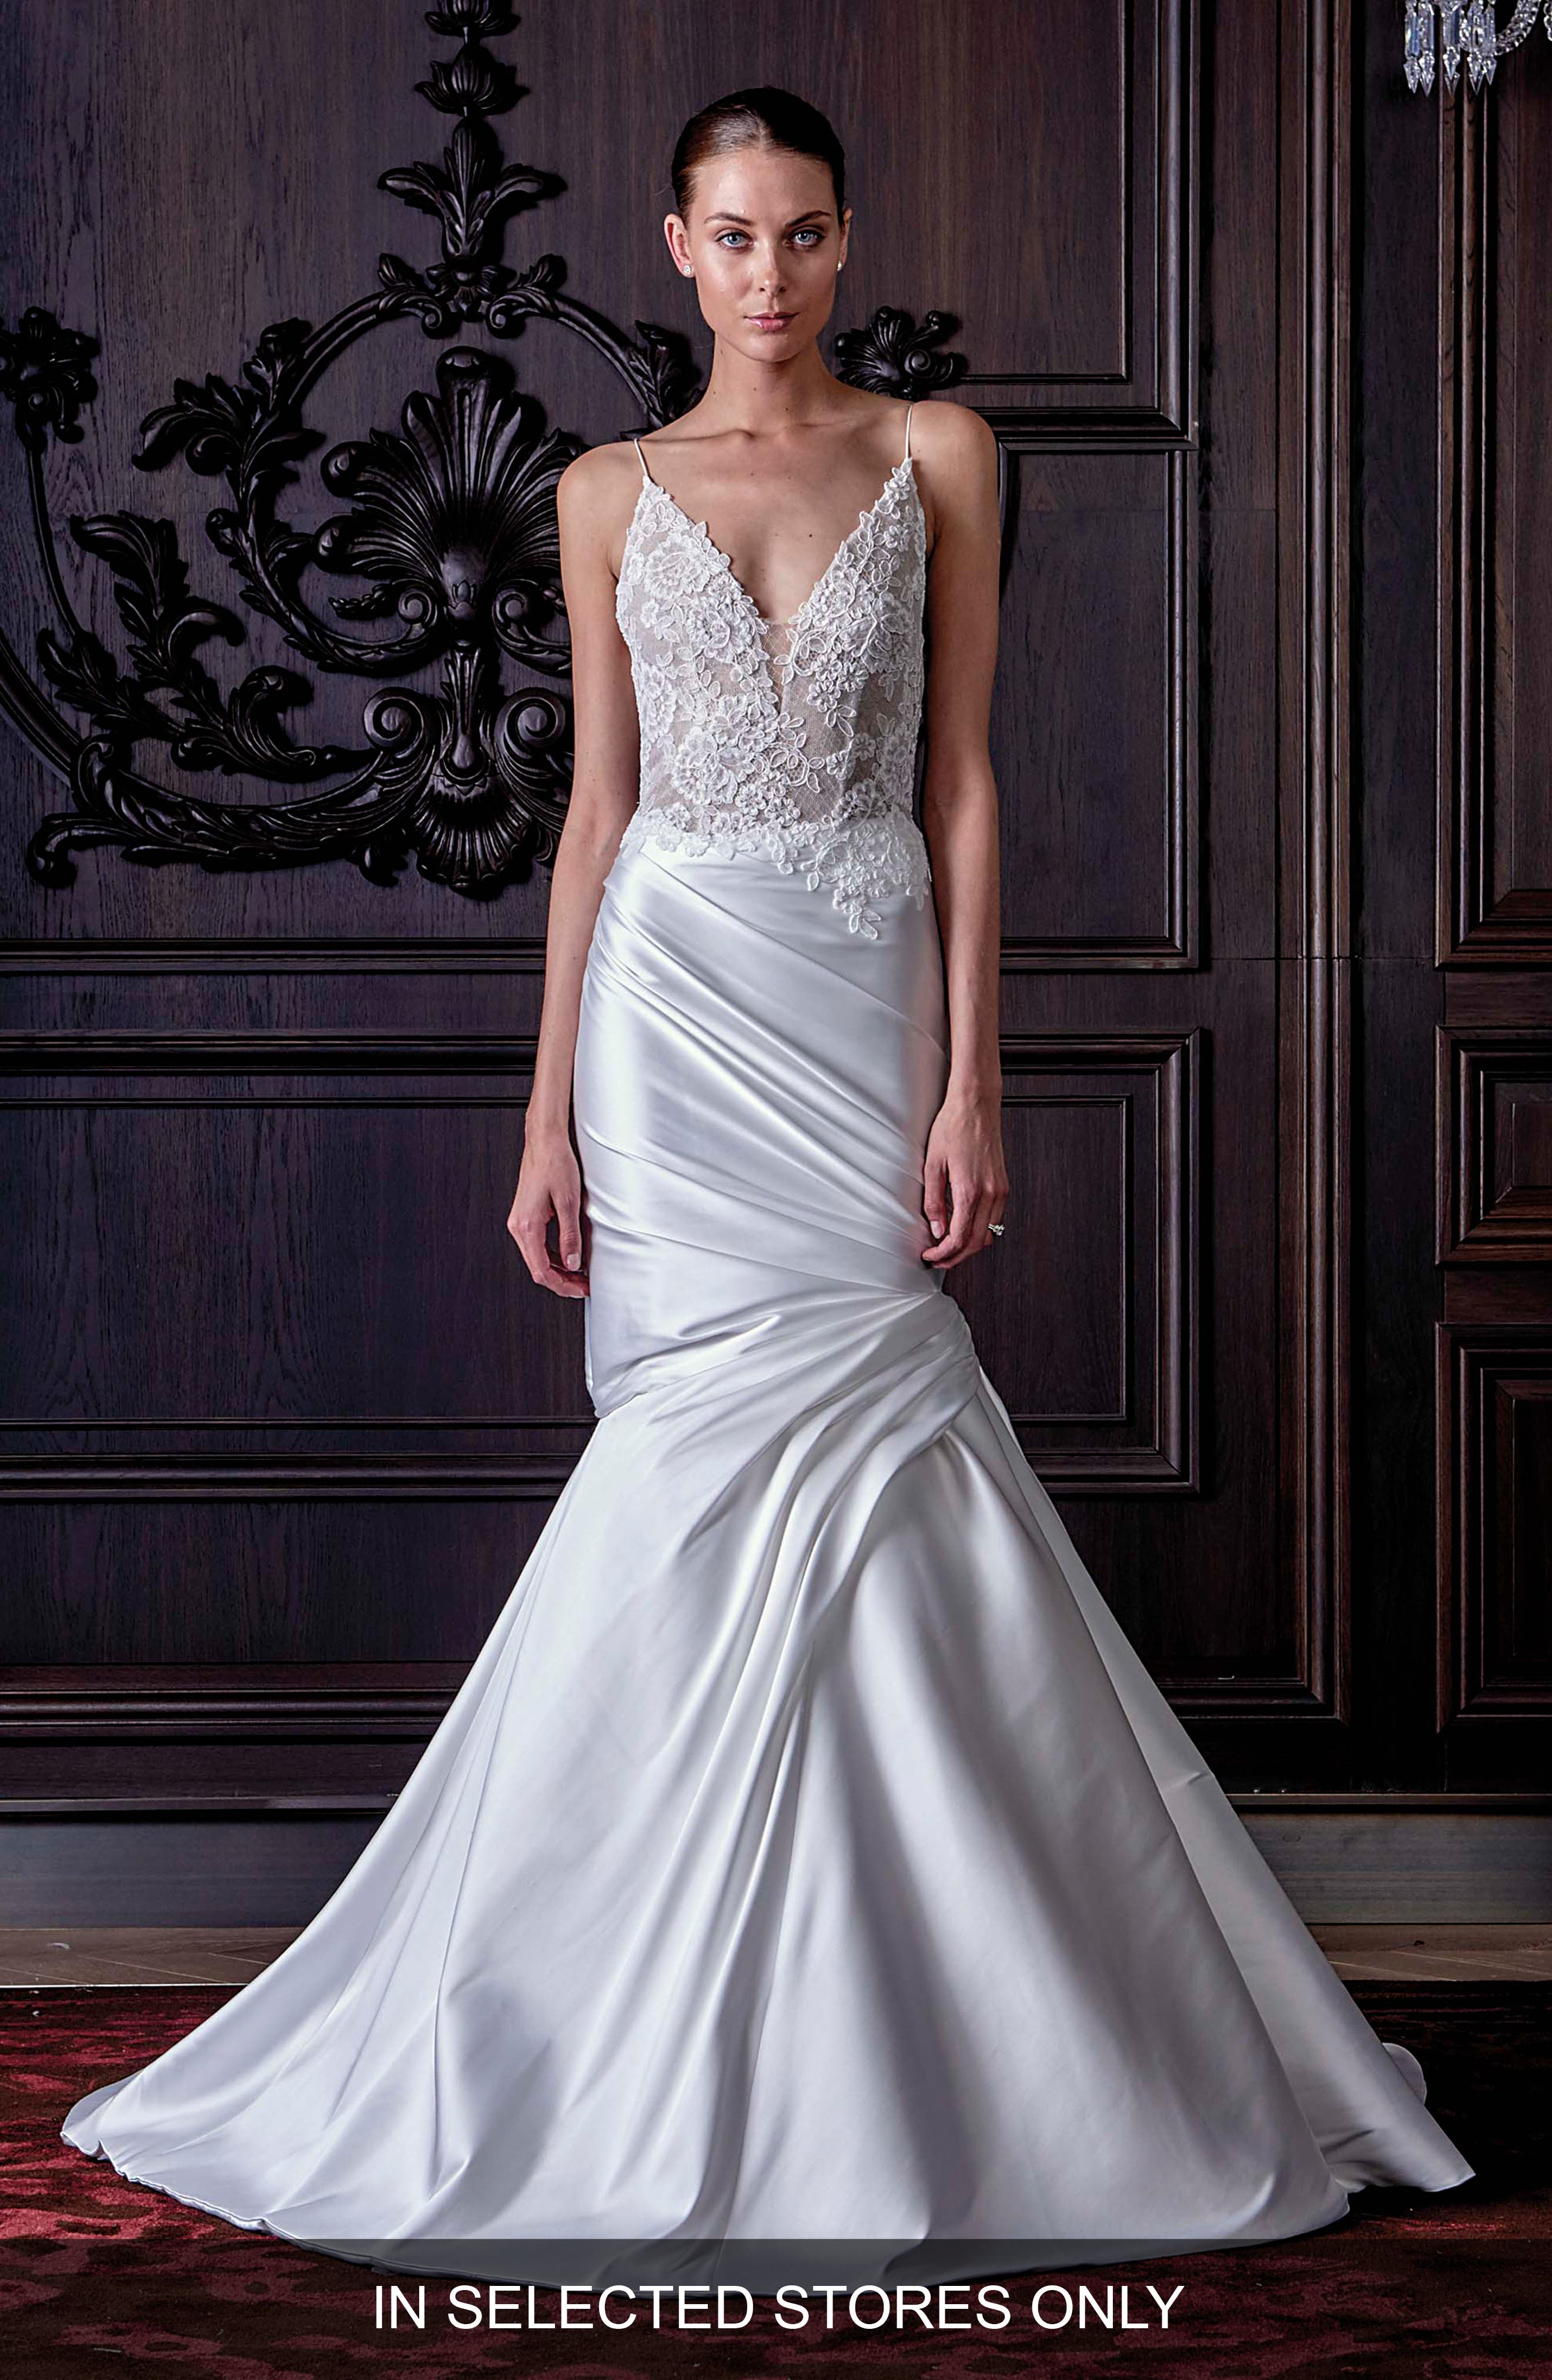 Monique Lhuillier 'Hadley' Chantilly Lace & Mikado Trumpet Gown (In Stores Only)